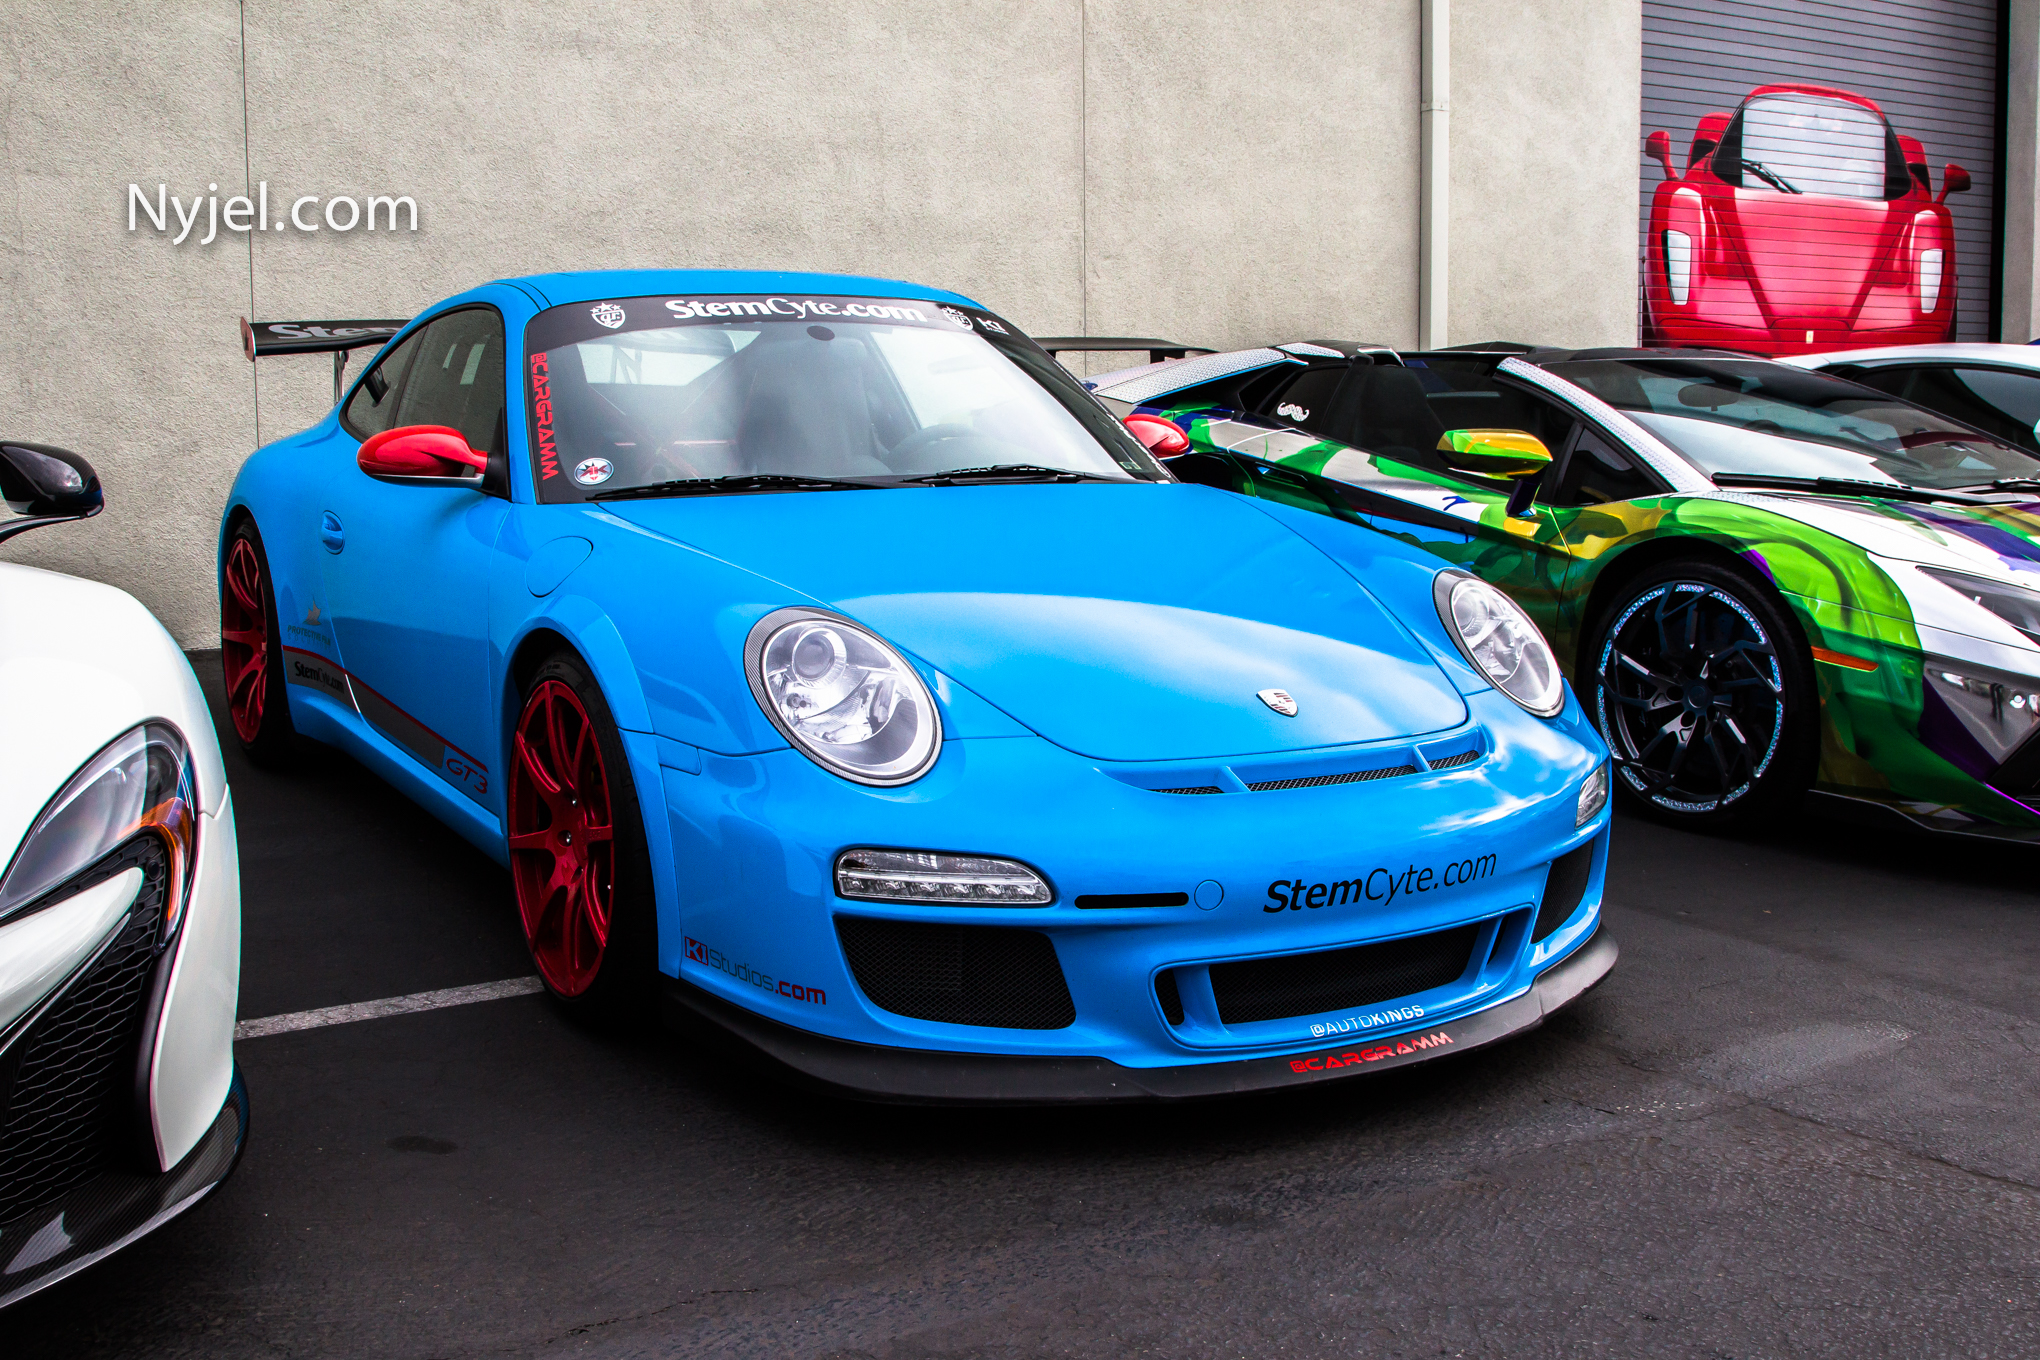 Image Result For New  Sports Cars Wallpaper